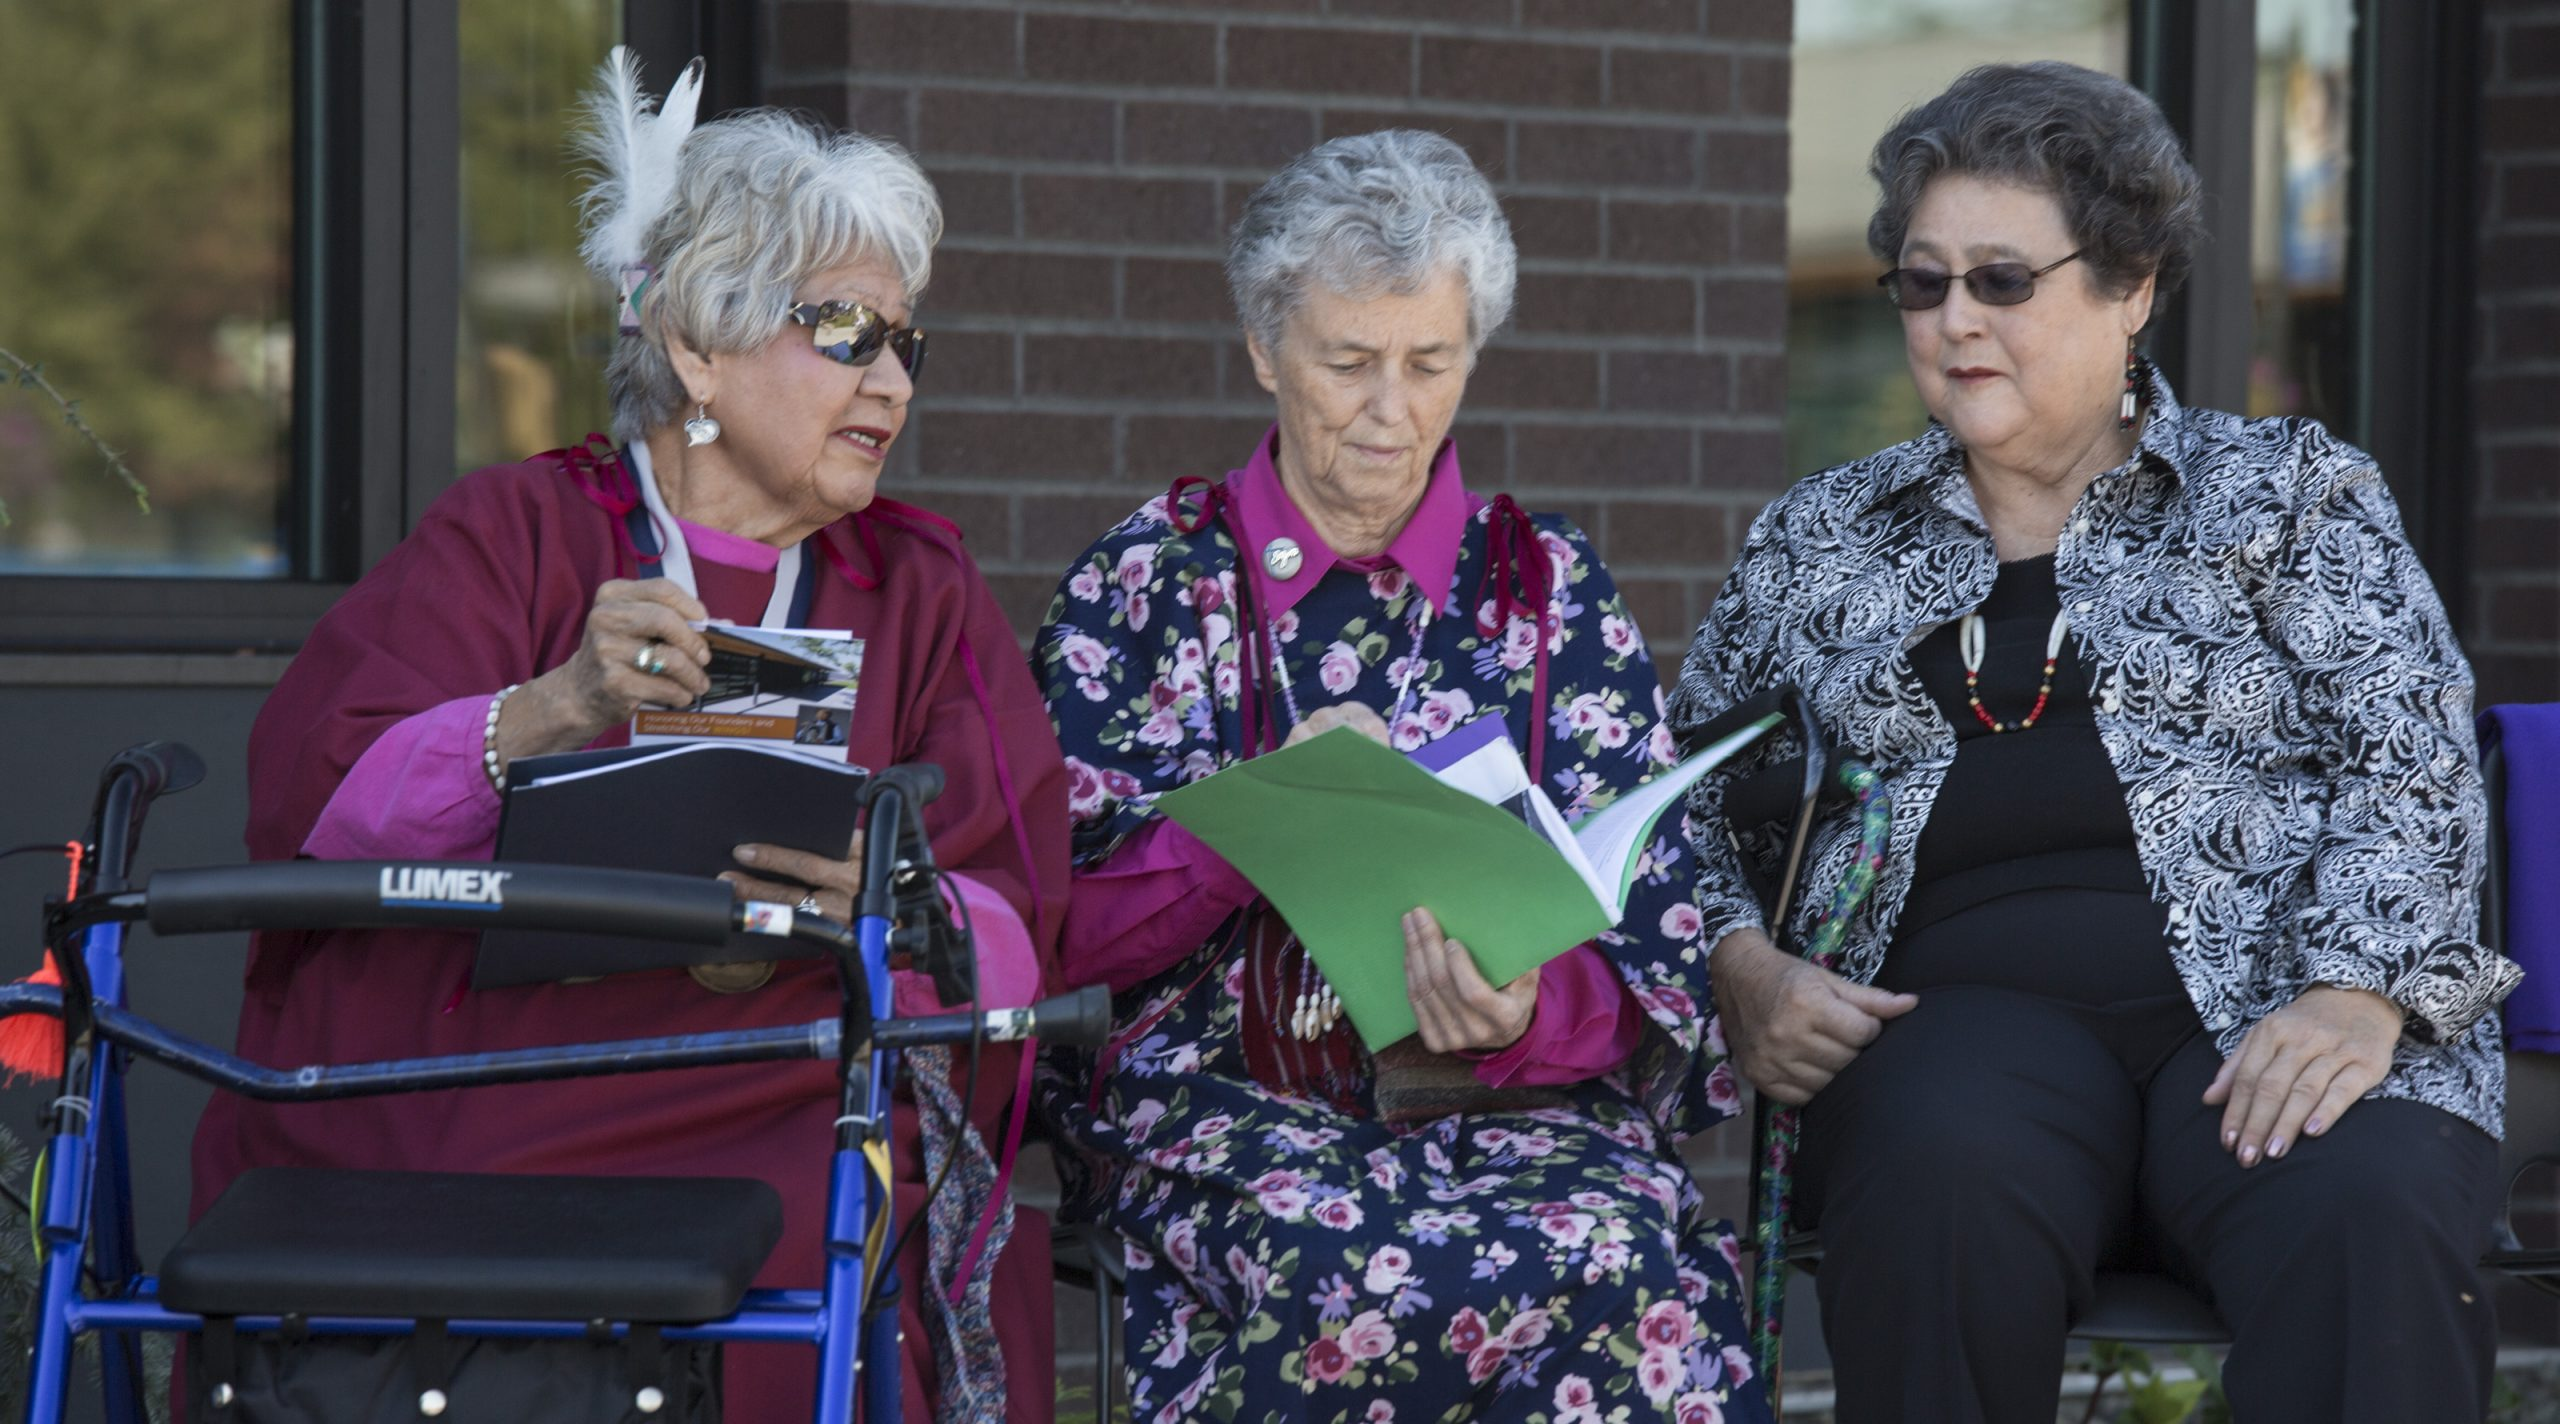 Kathleen Ross, snjm at the dedication of the Martha B. Yallup Health Sciences Building at Heritage University, holding a green folder with Martha Yallup at her left and Yallup's sister to her right.